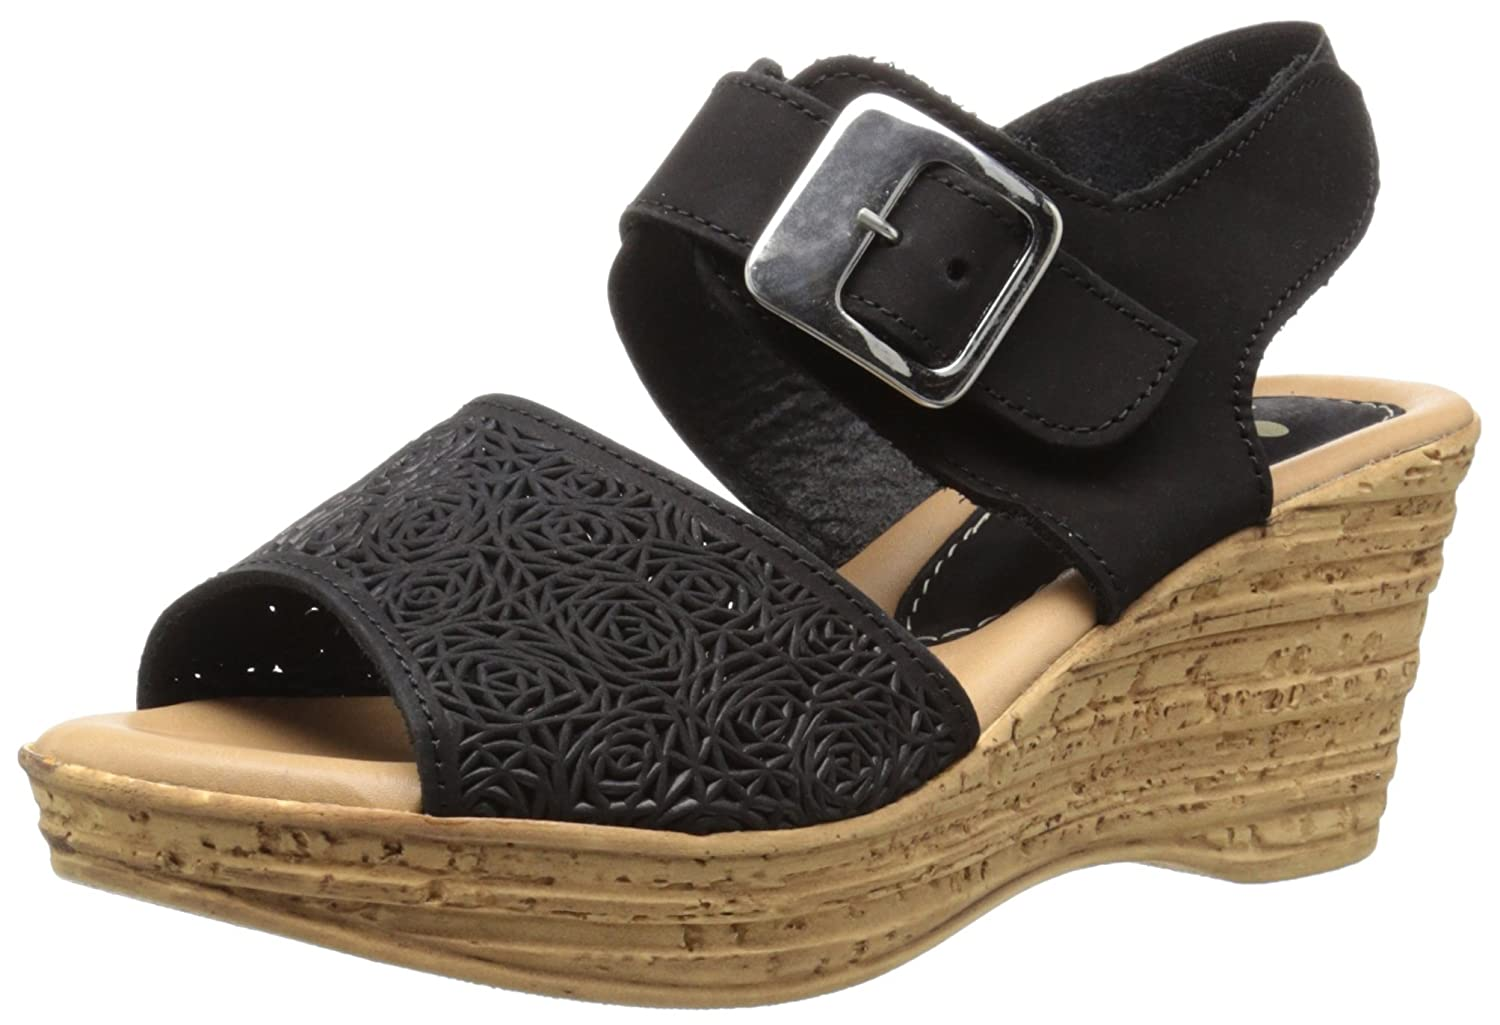 Spring Step Women's MITU Wedge Sandal B015RAKAWA 40 M EU / 9 B(M) US|Black